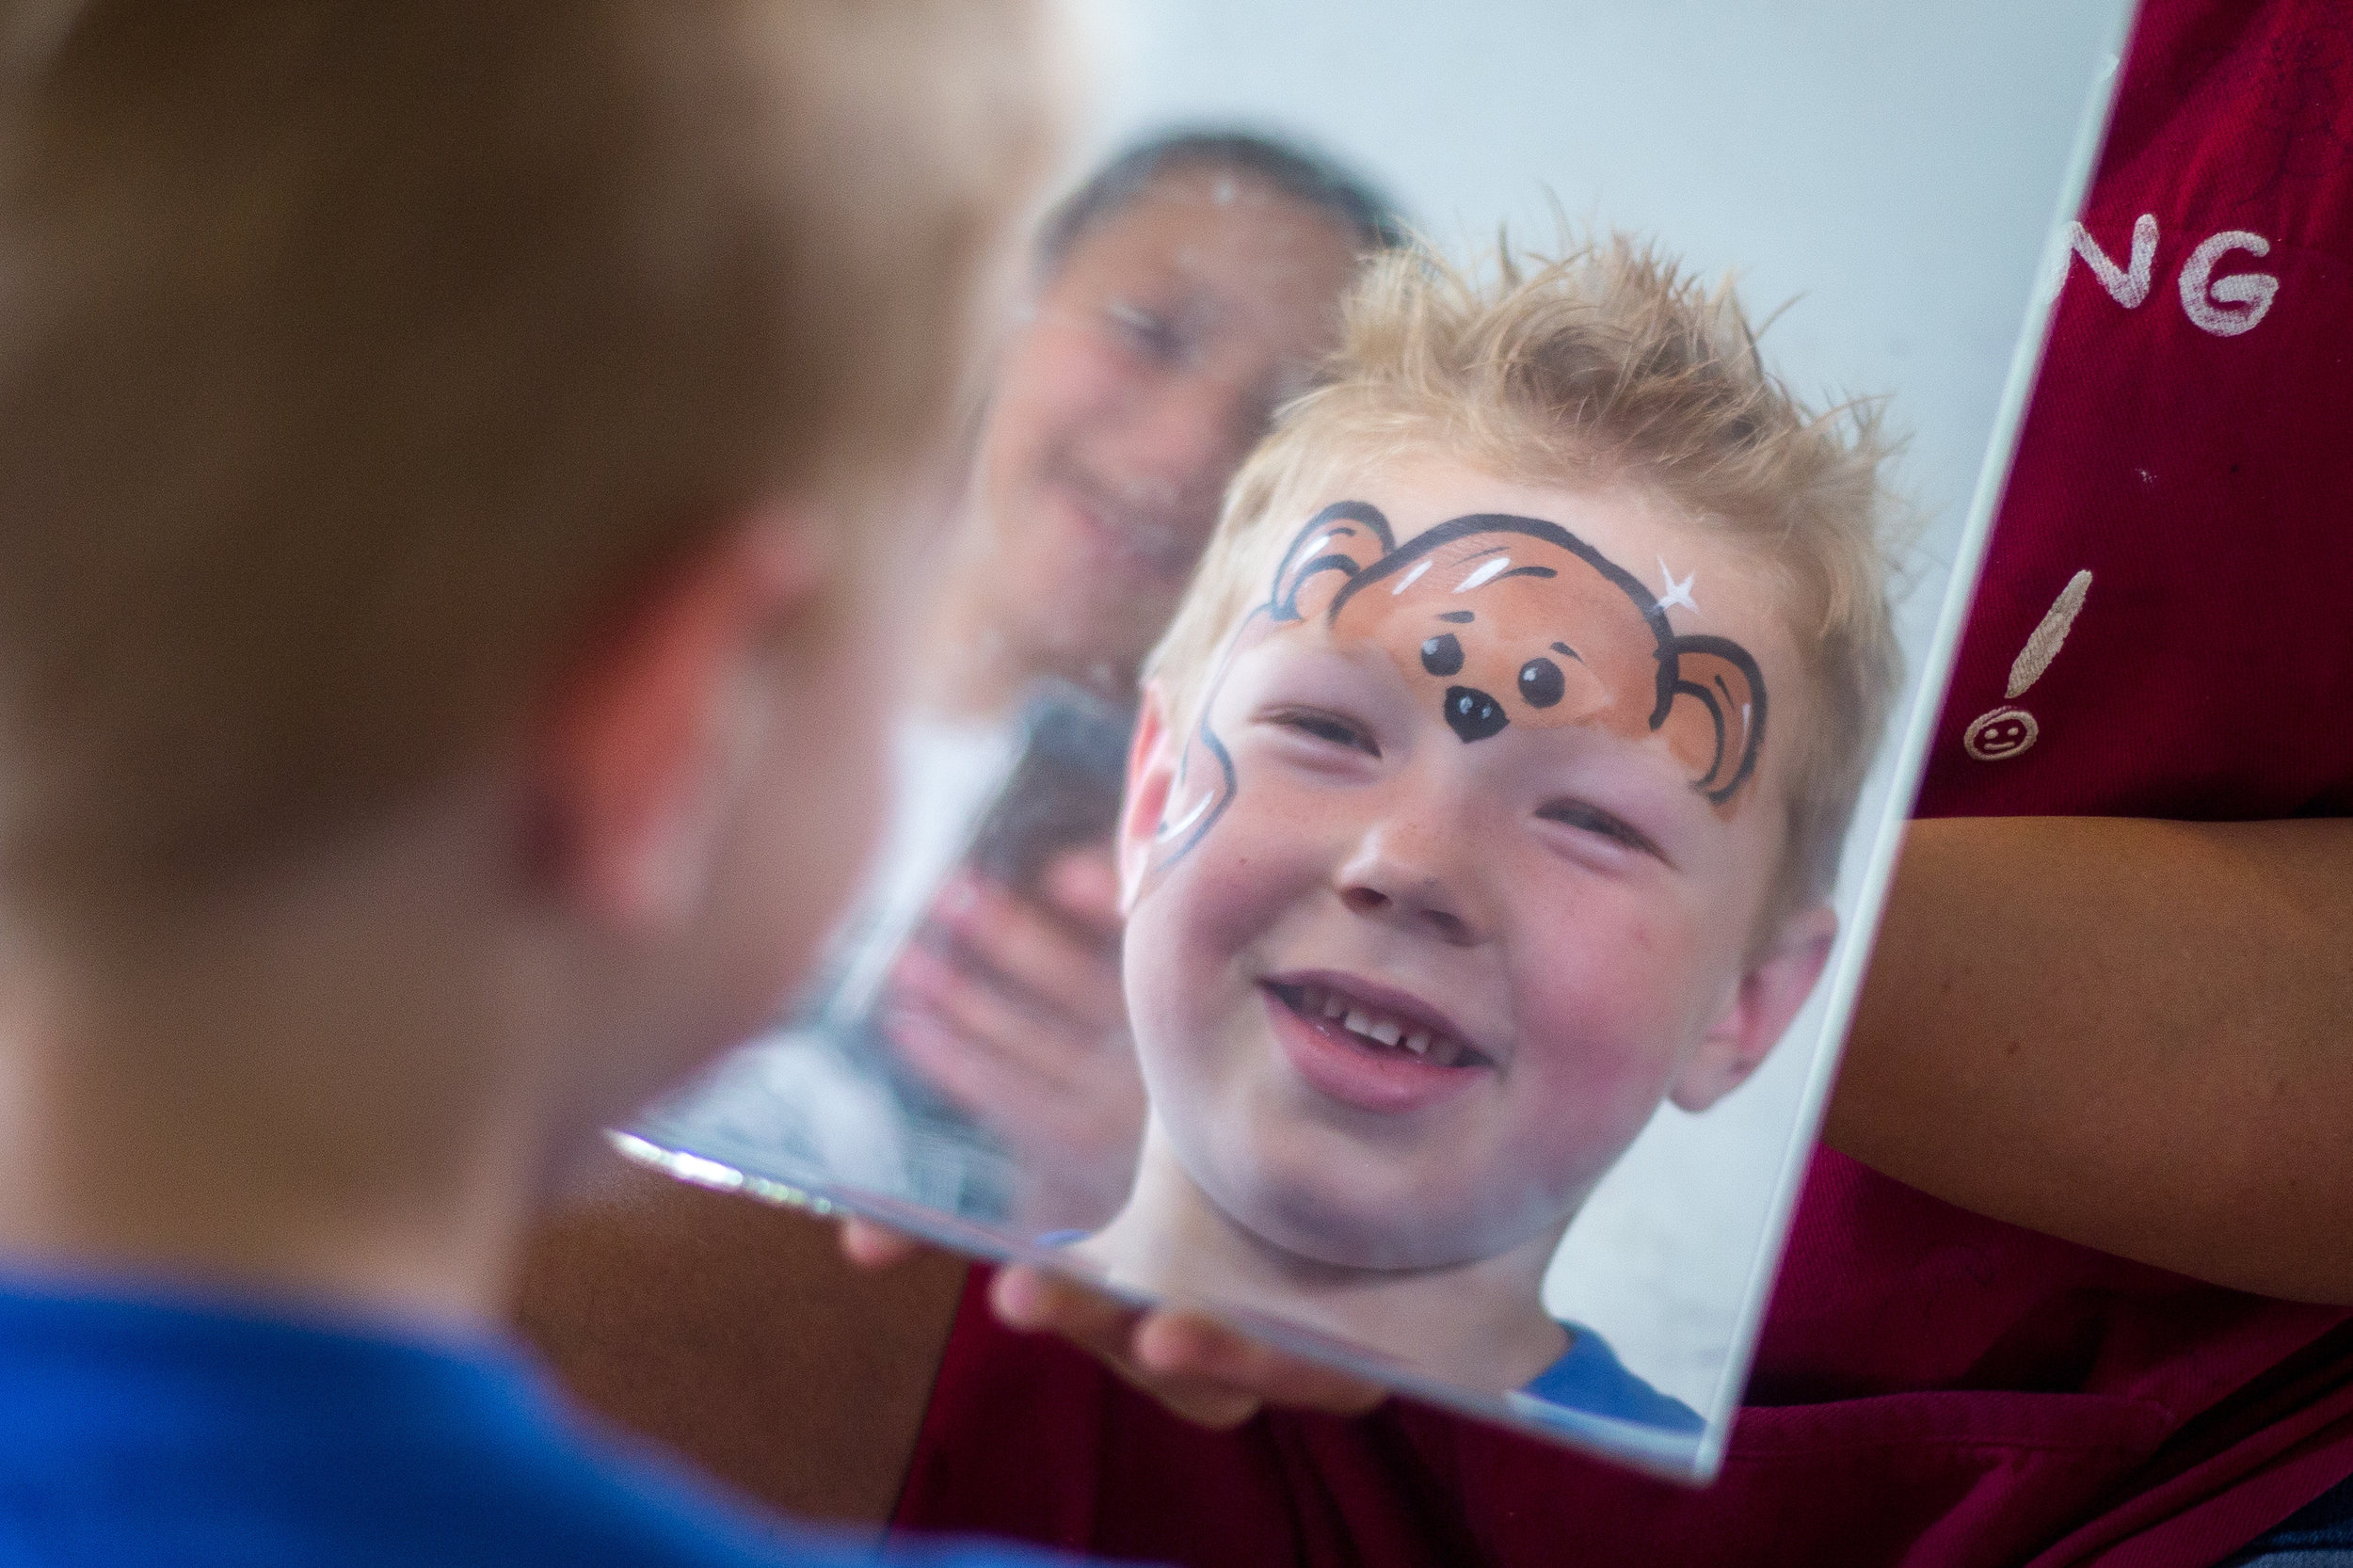 Jesse Shaffer, 7, of Darlington, smiles as he sees his face painted like a monkey by Teressa Hajtol at the Beaver County Bookfest in Beaver on Saturday afternoon. The Bookfest featured over 50 authors, a children's tent, food vendors and activities.